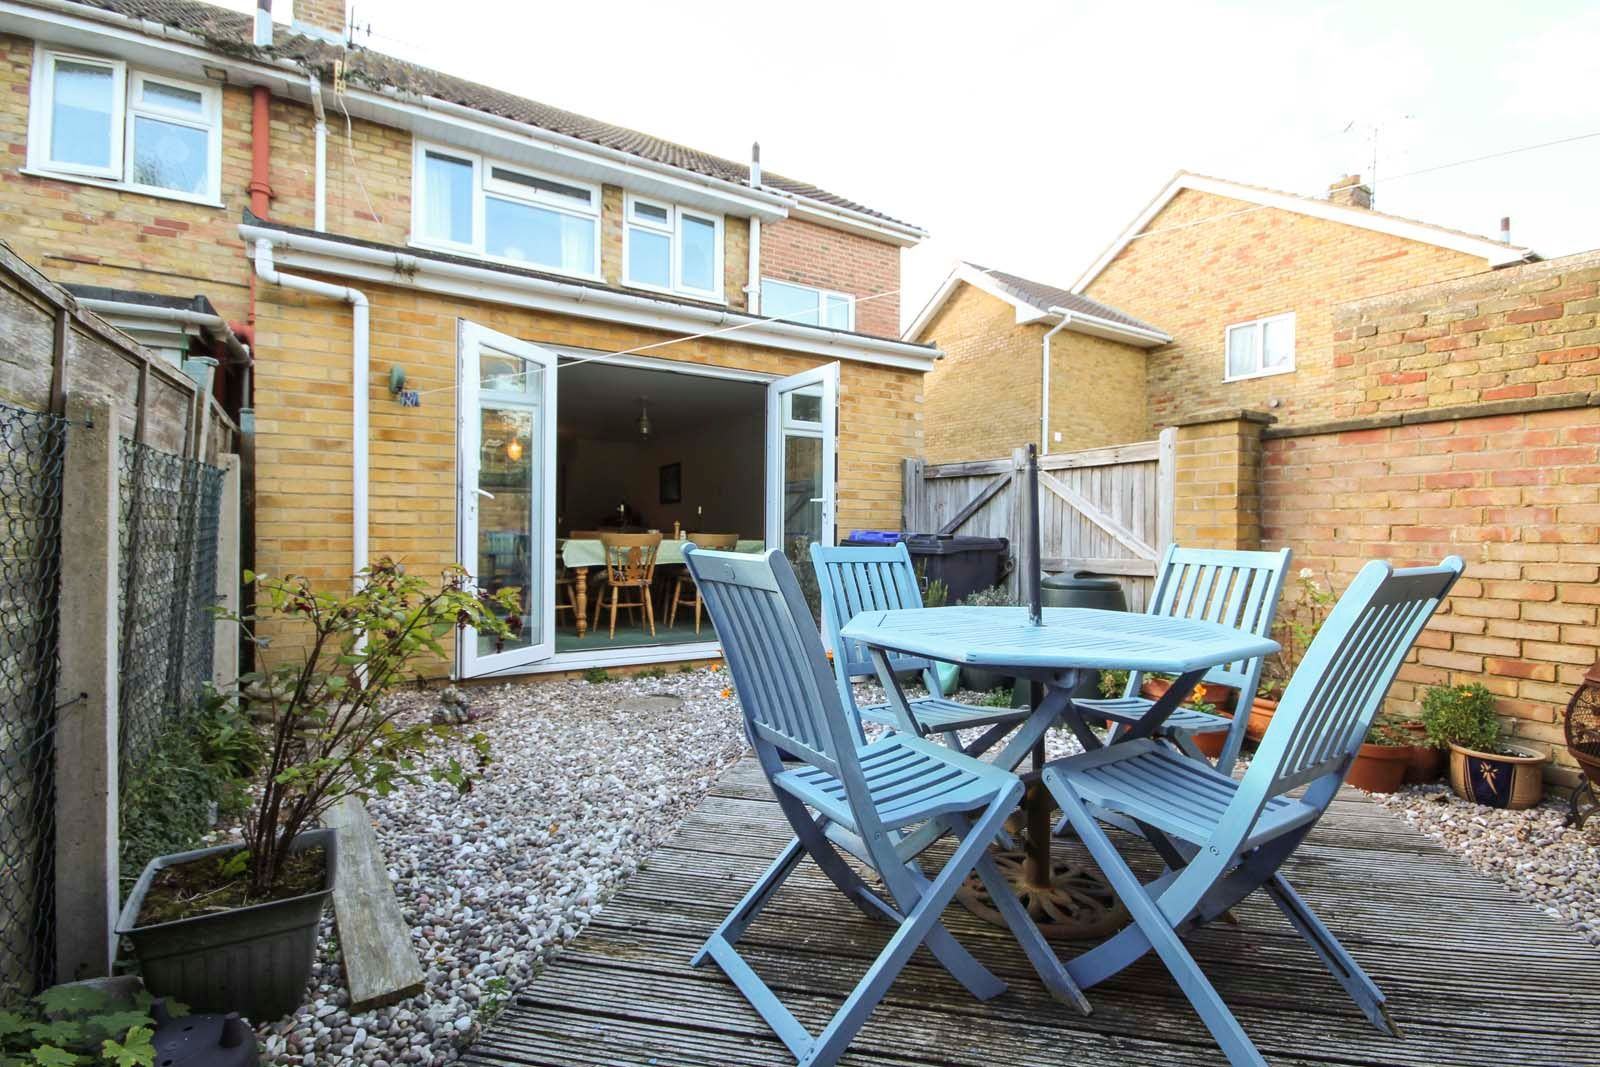 4 bed house for sale in Bellview Road  - Property Image 4